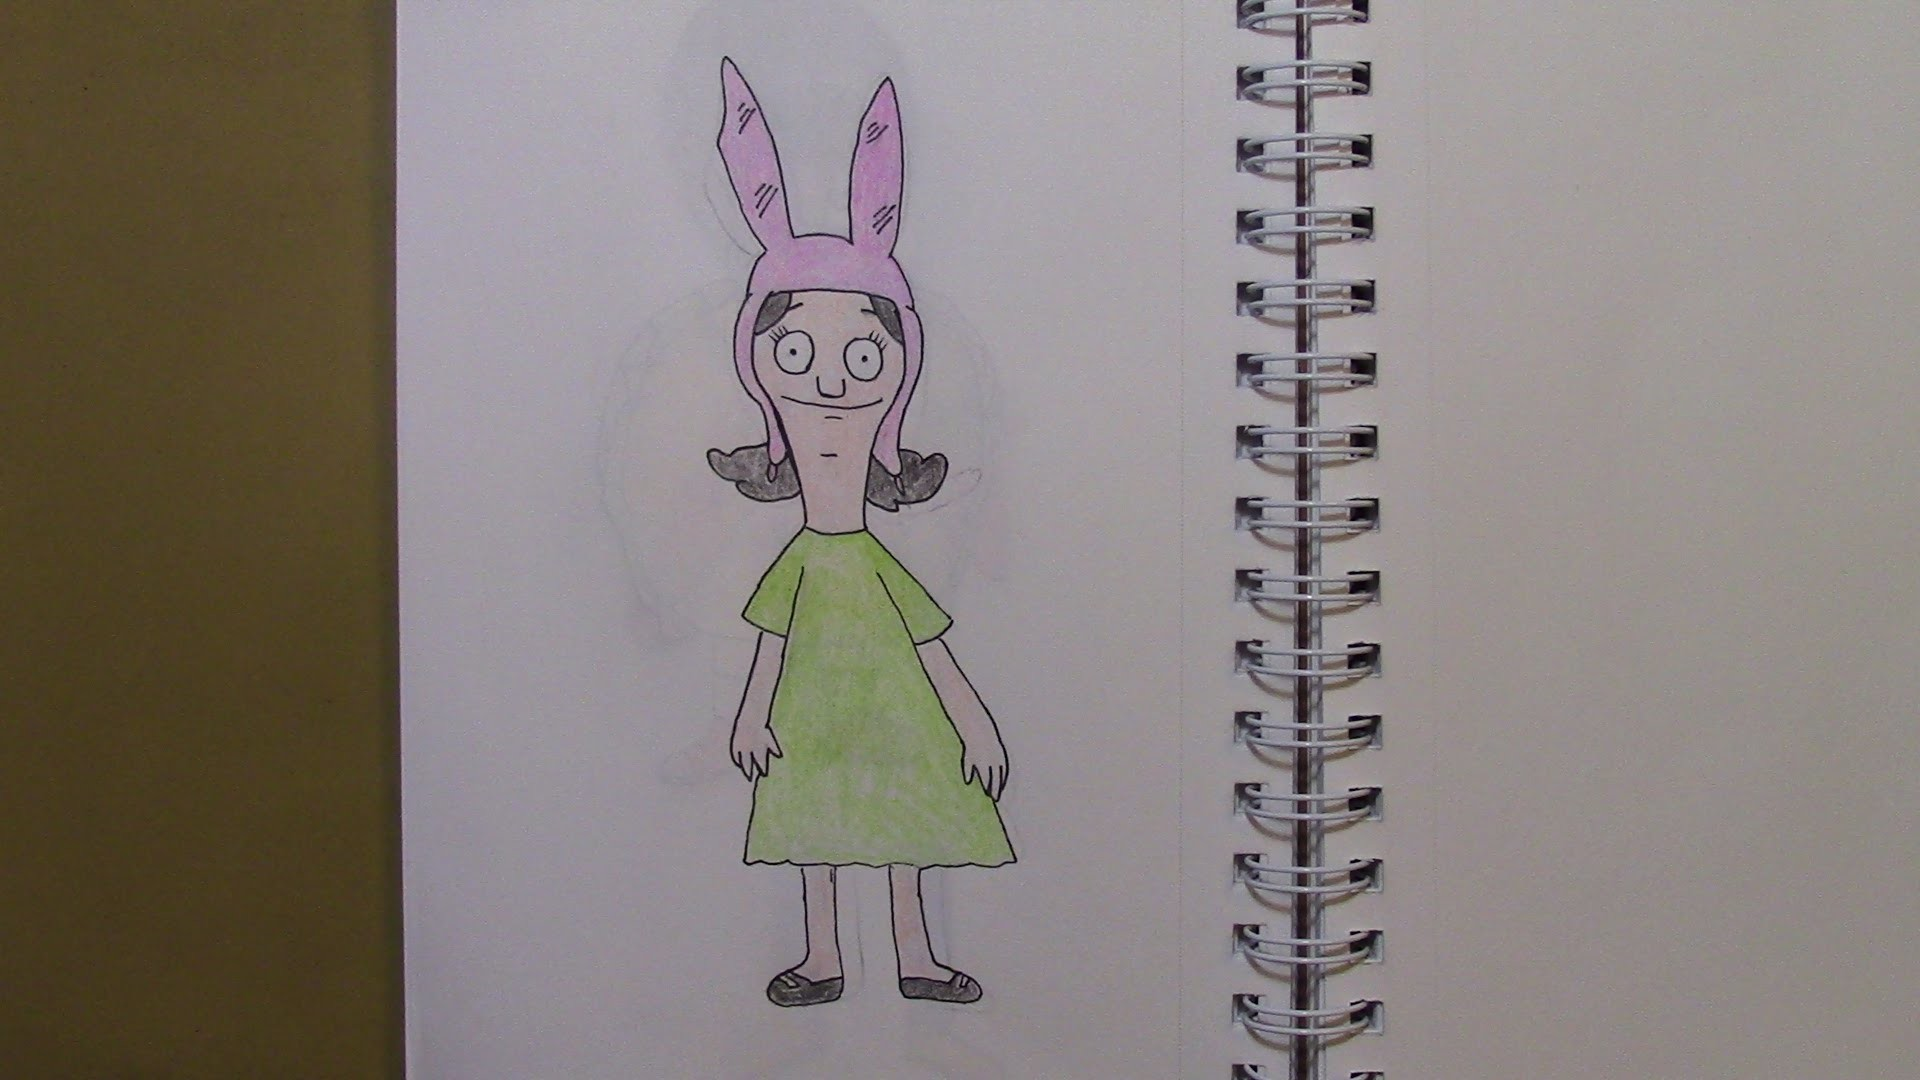 376 - How to Draw Louise Belcher from Bob's Burgers